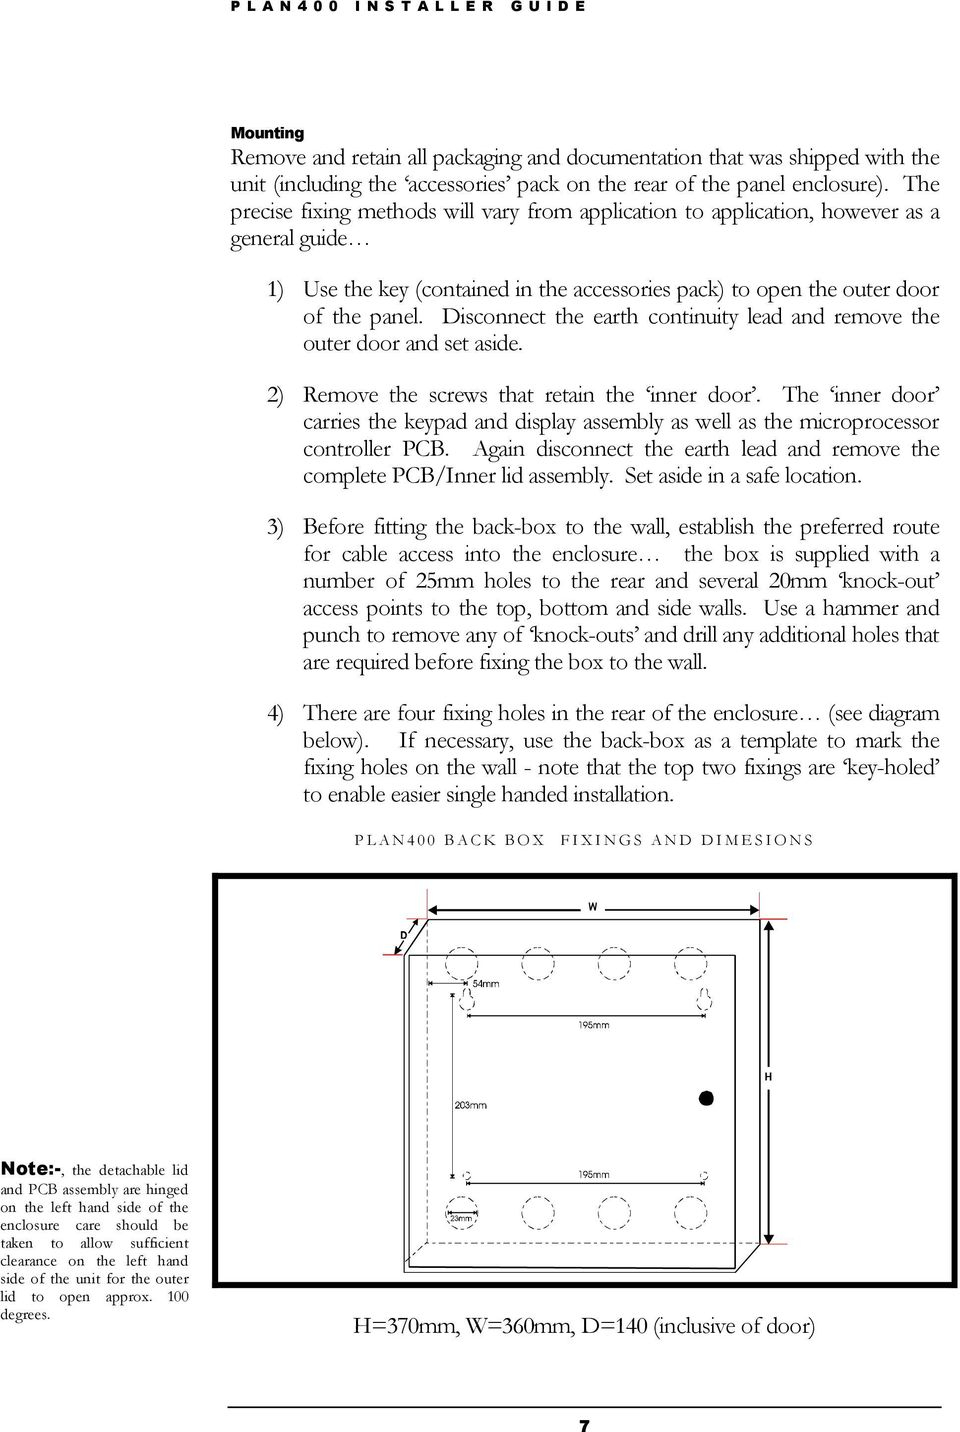 PLAN400 V6 6X  Networked Access Control Panel  Installation Guide - PDF